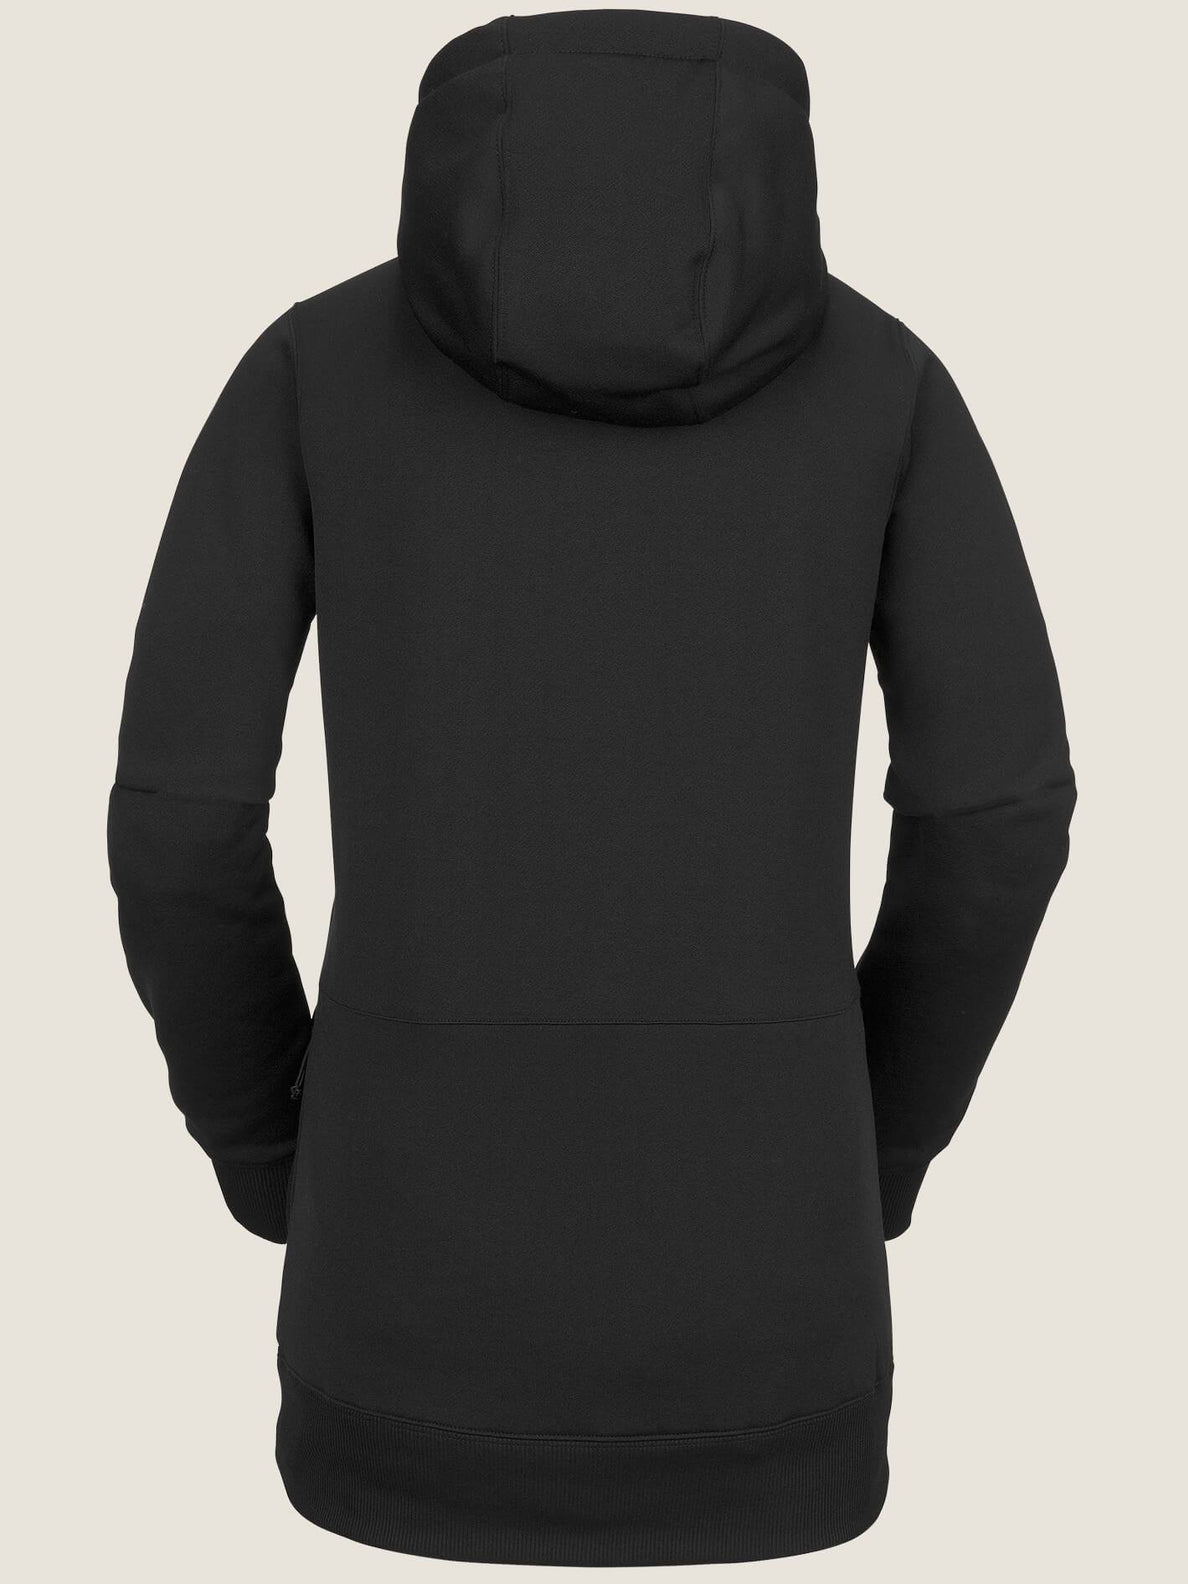 Vitro Fleece - Black